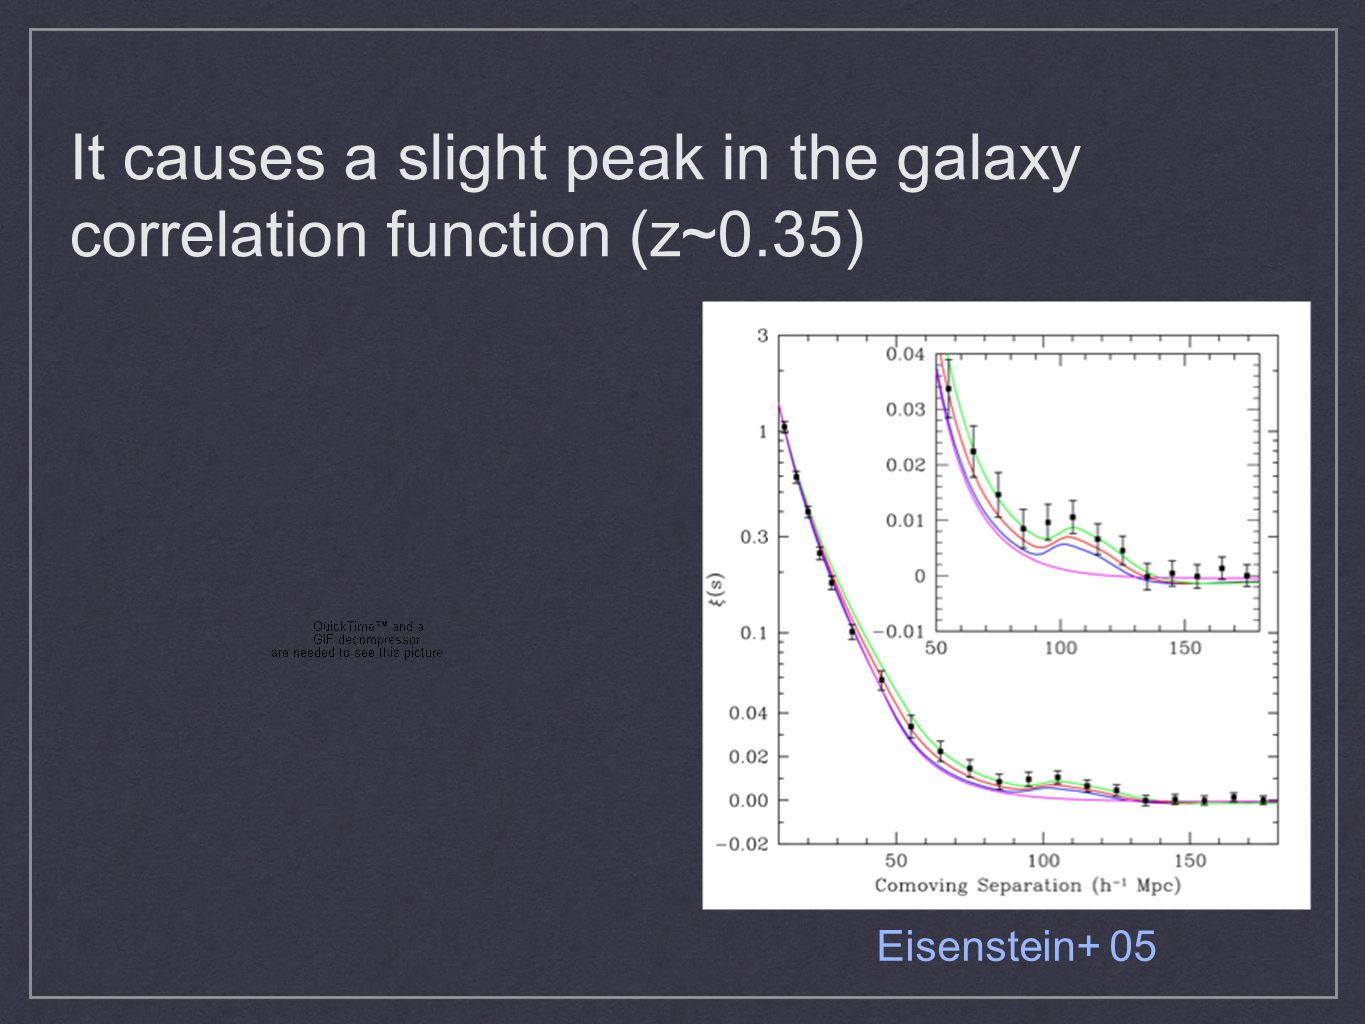 It causes a slight peak in the galaxy correlation function (z~0.35)